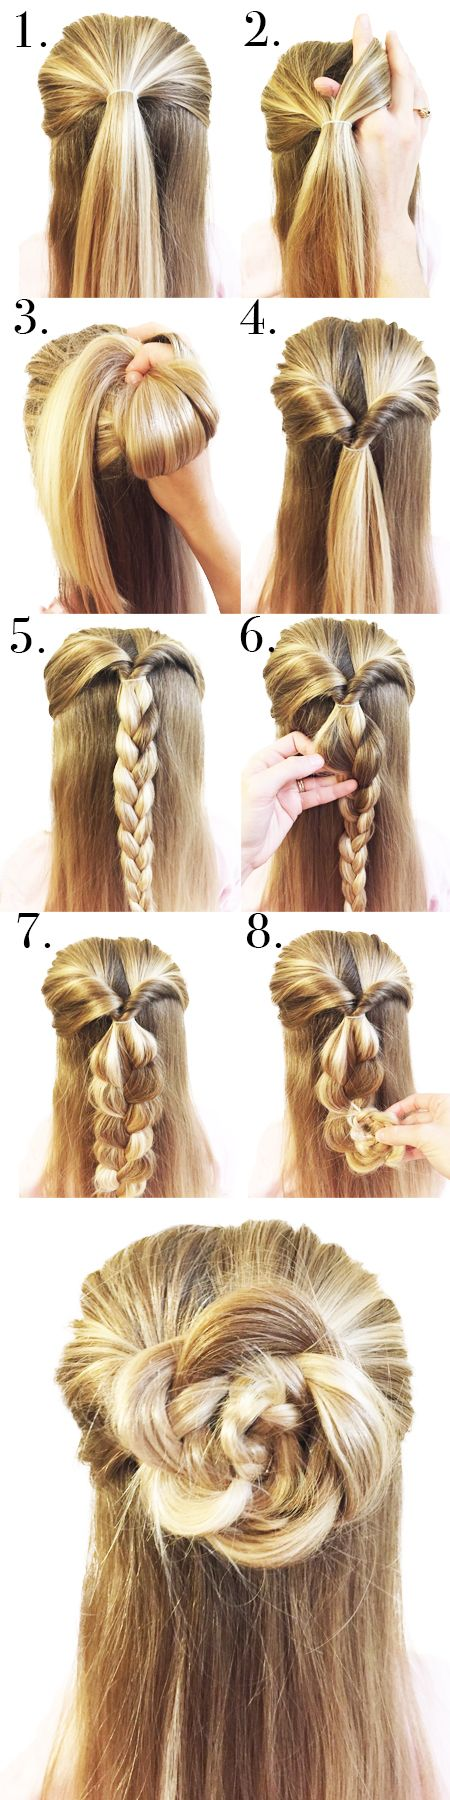 The braided rose hair how to more cute things i should do